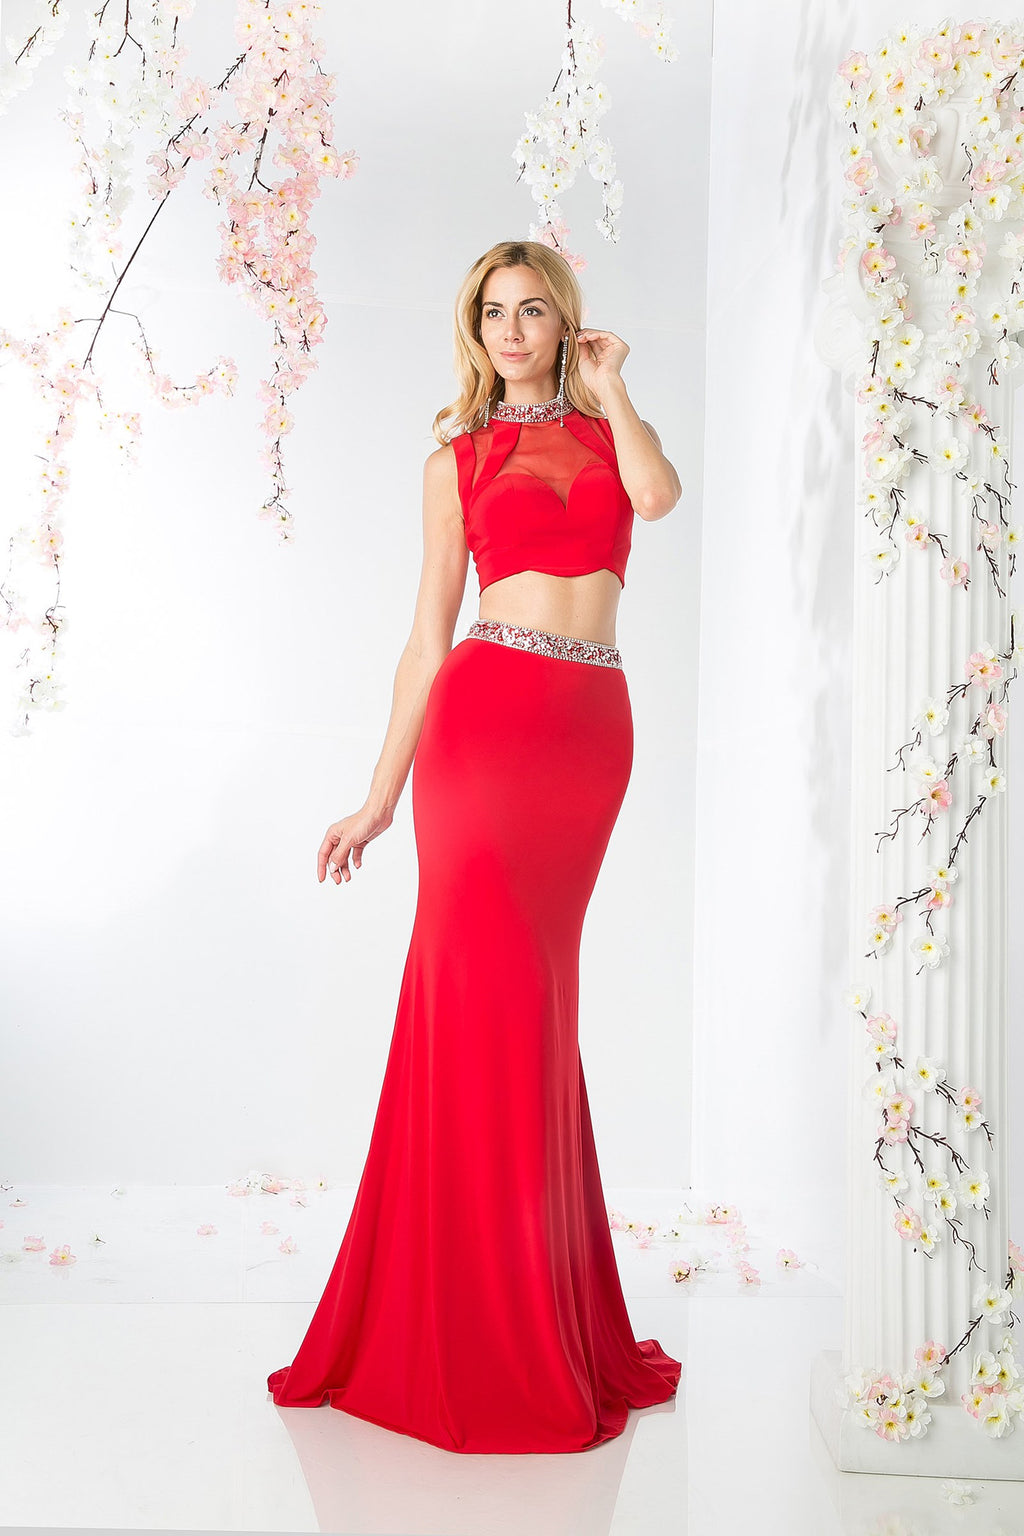 LONG TWO PIECE DRESS WITH AUSTRIAN CRYSTAL STYLE #CK20 - NORMA REED - 1